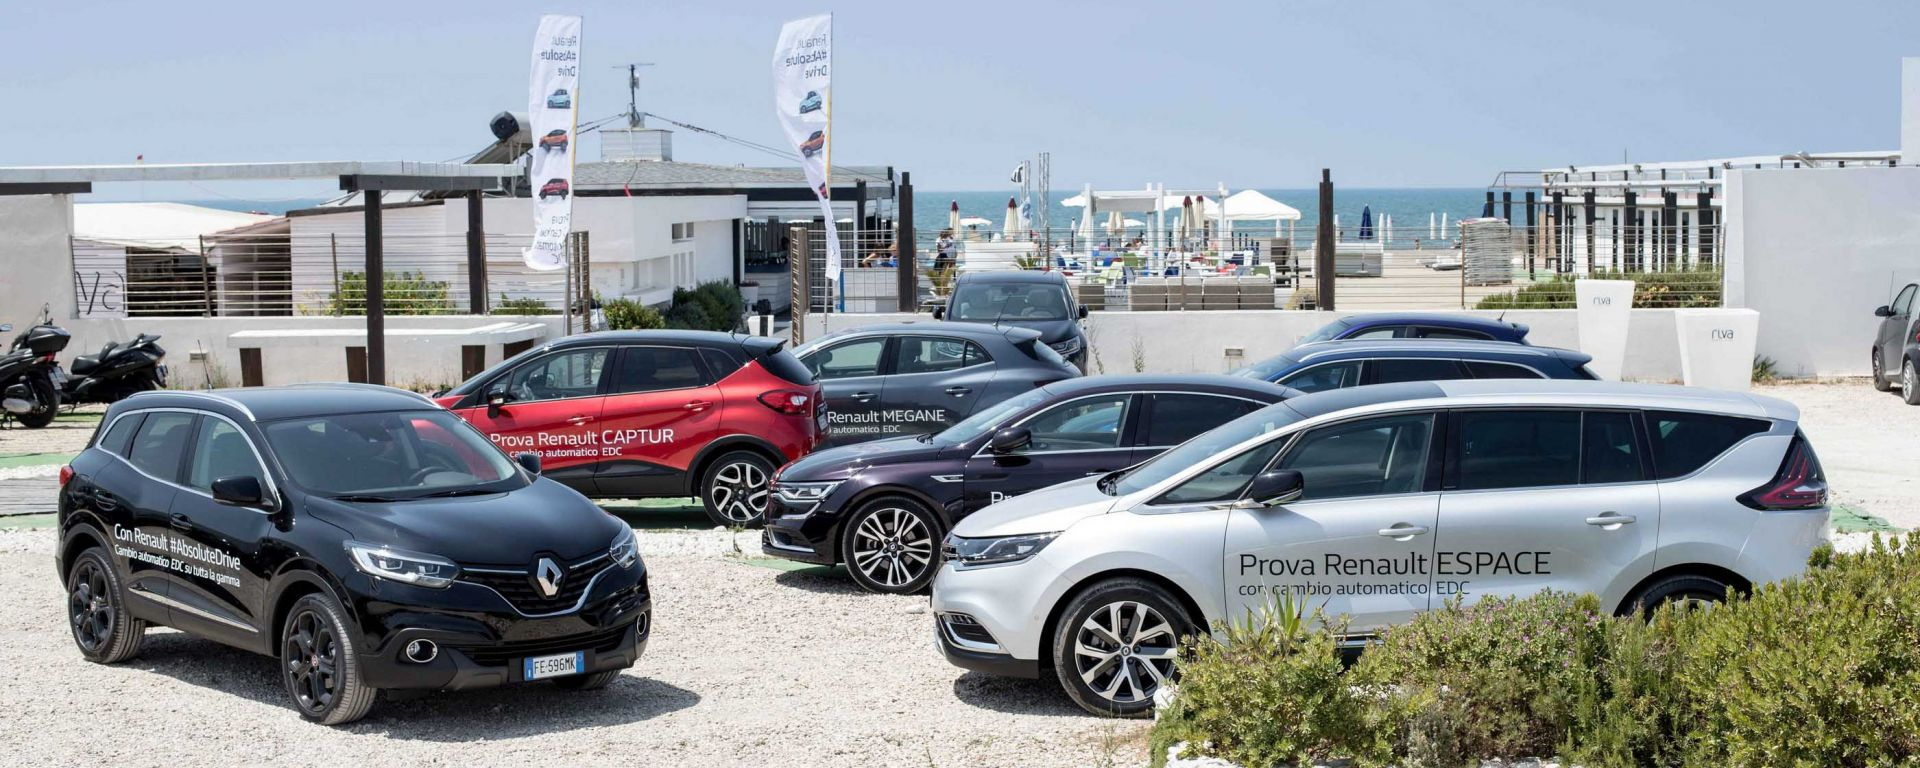 Renault Absolute Drive Tour: giro d'Italia in automatico